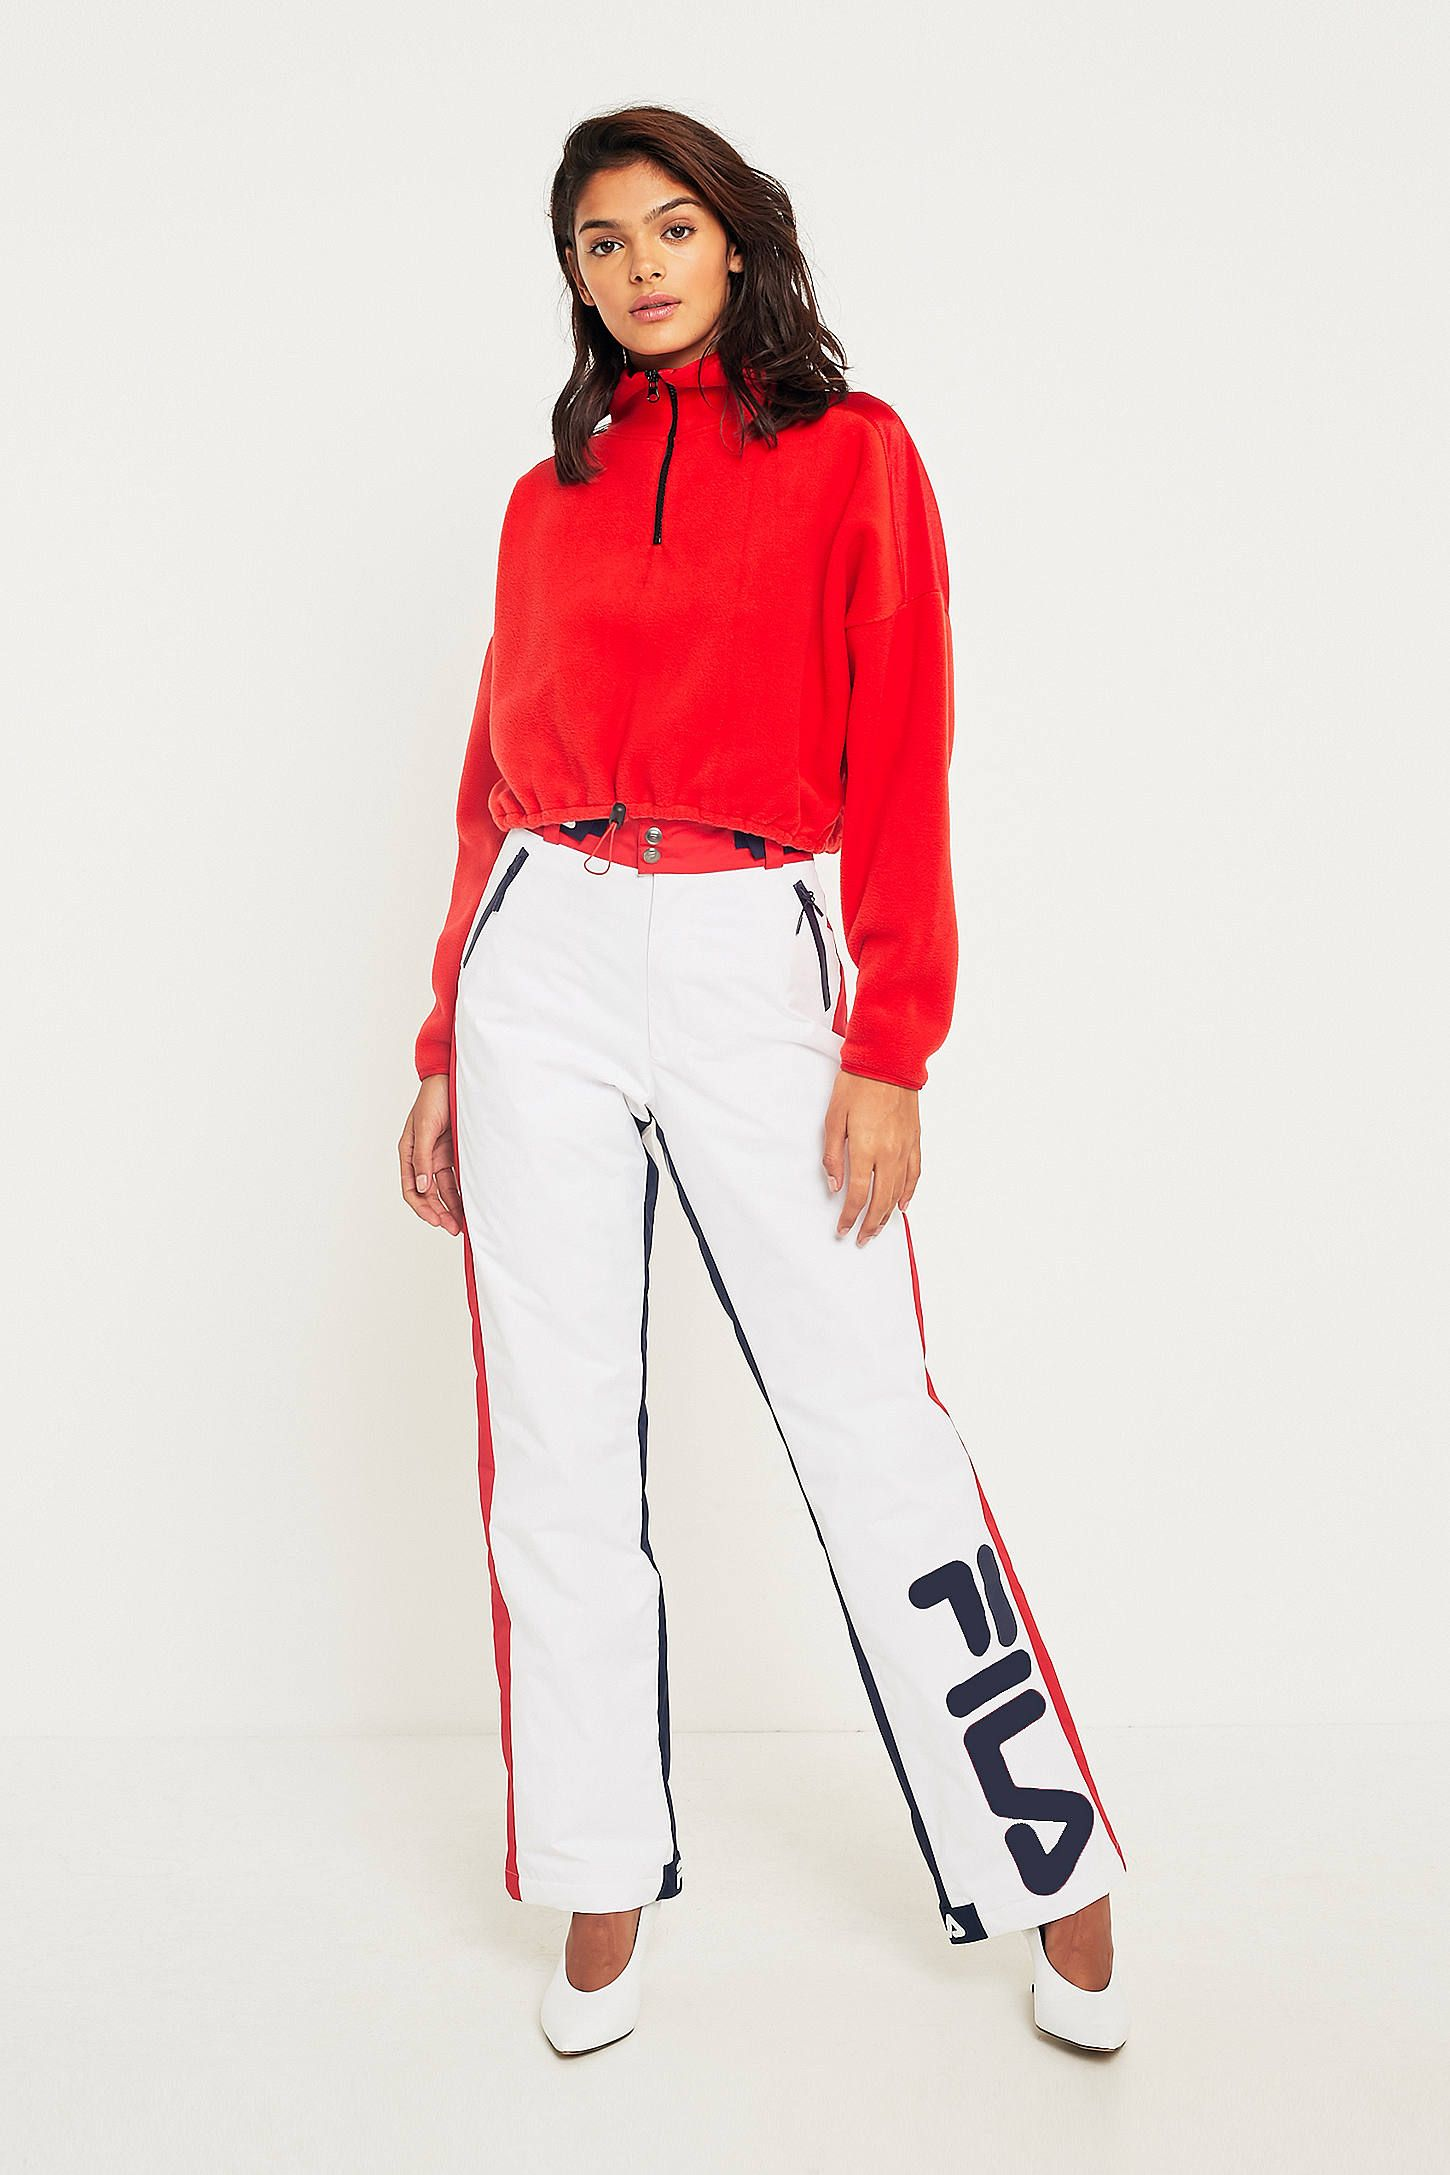 6f606f796d Shop FILA Ski Pants at Urban Outfitters today. We carry all the latest  styles, colours and brands for you to choose from right here.